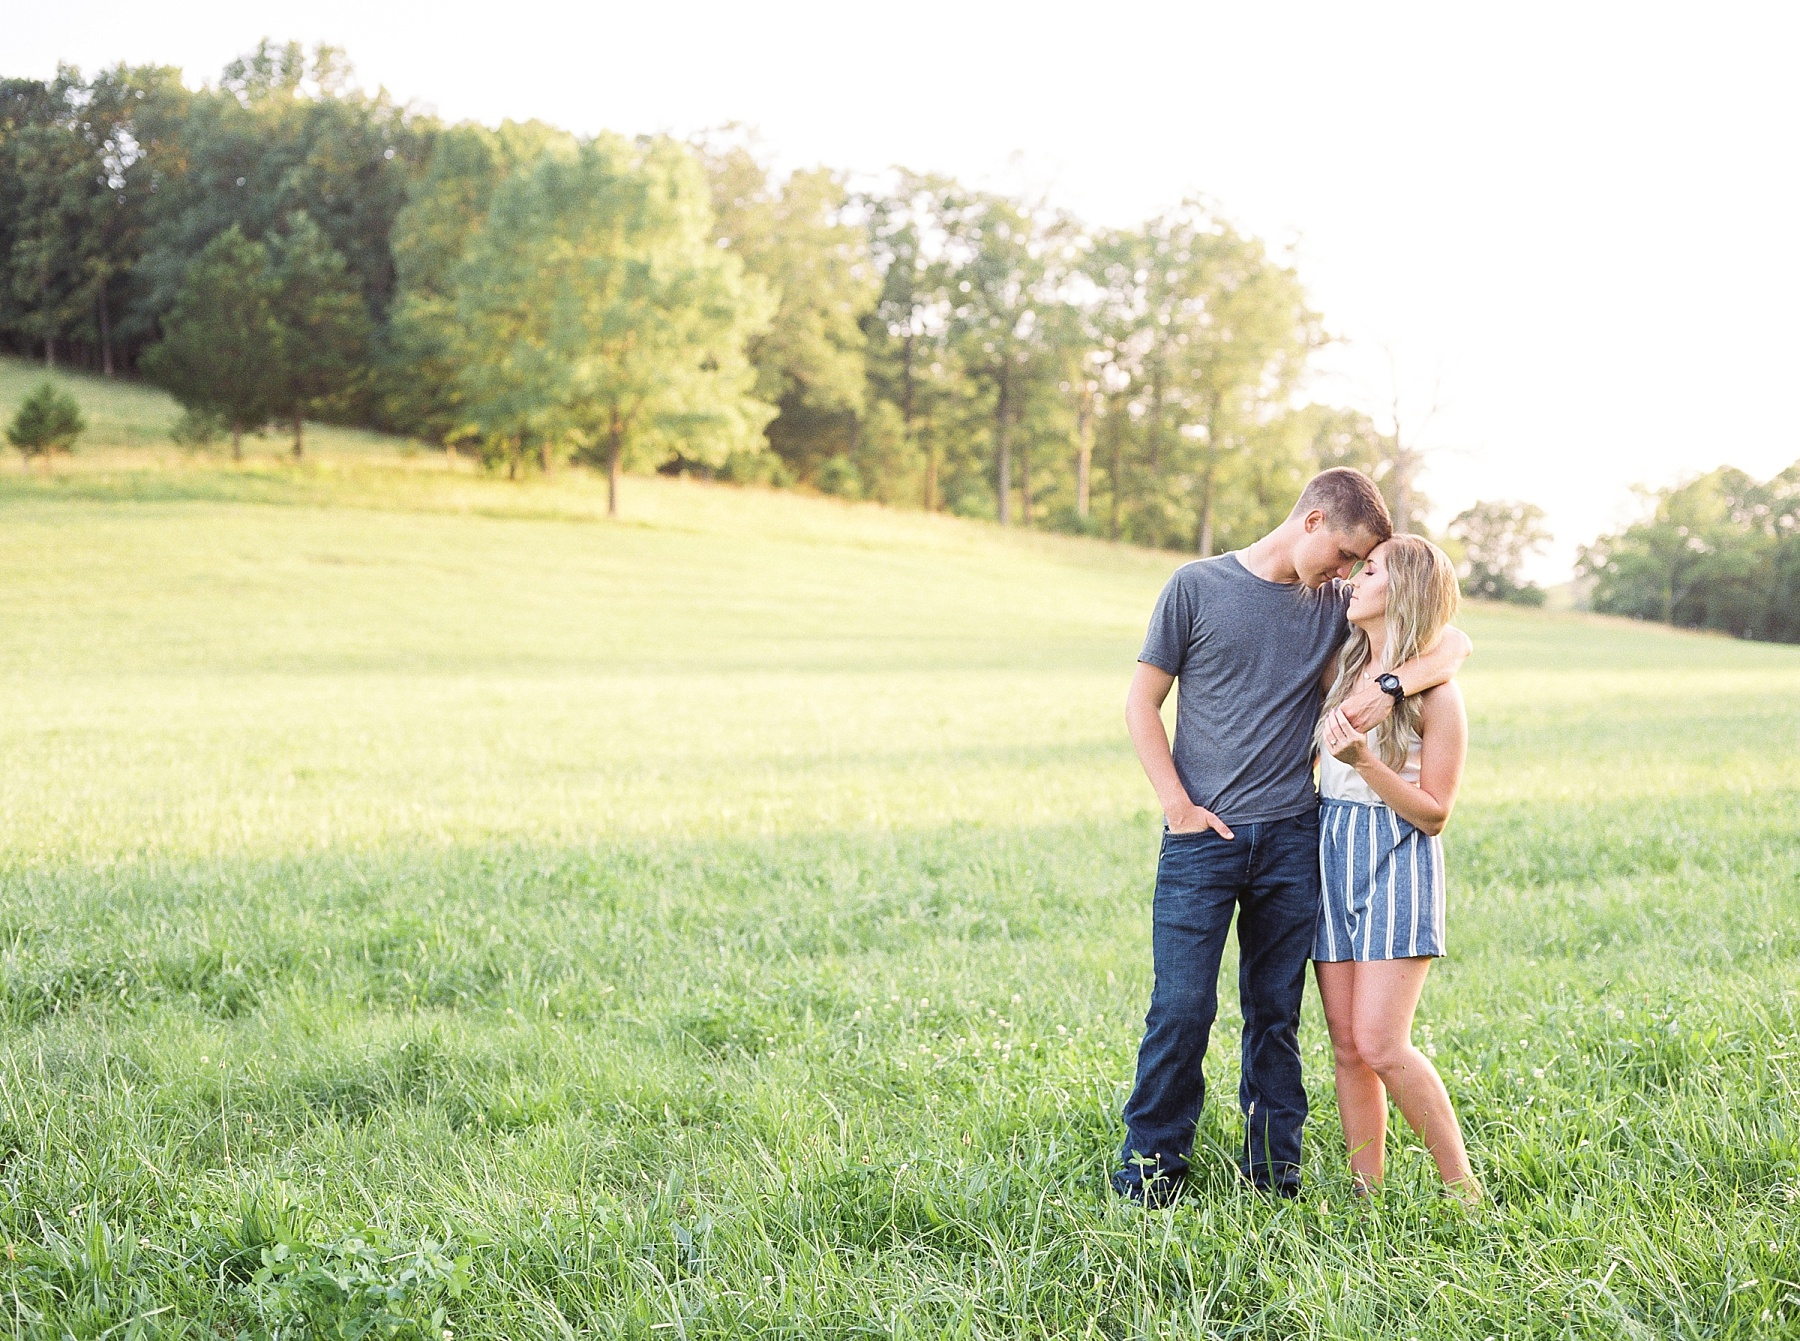 Golden Hour Summer Engagement Session at Lakeside Valley and Vineyards at Kempkers Back 40 by Kelsi Kliethermes Photography Best Missouri and Maui Wedding Photographer_0001.jpg